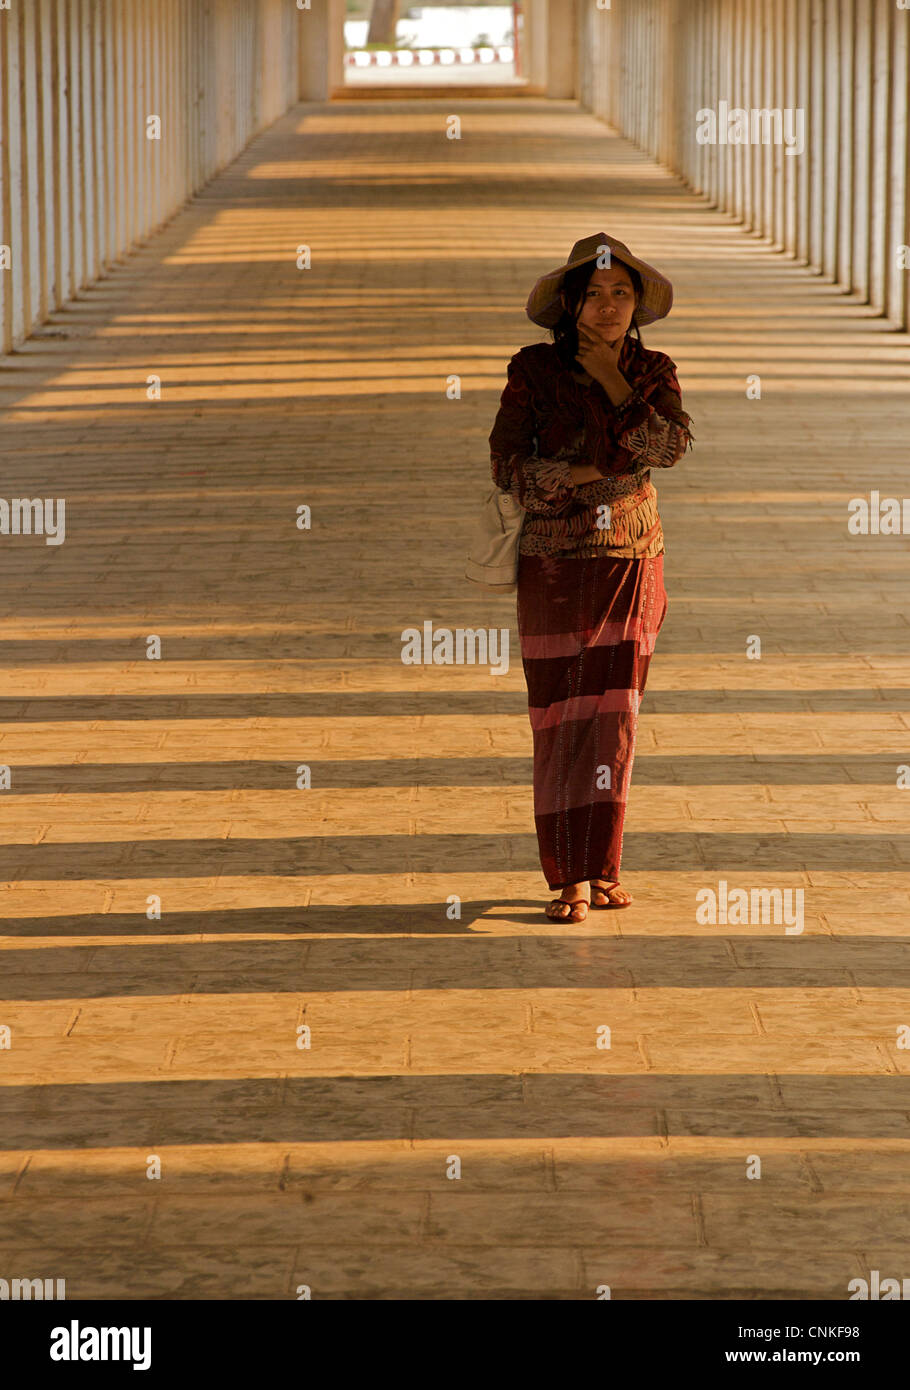 Burmese woman in the corridor at Shwezigon Pagoda, Bagan. Burma. Model Released. - Stock Image